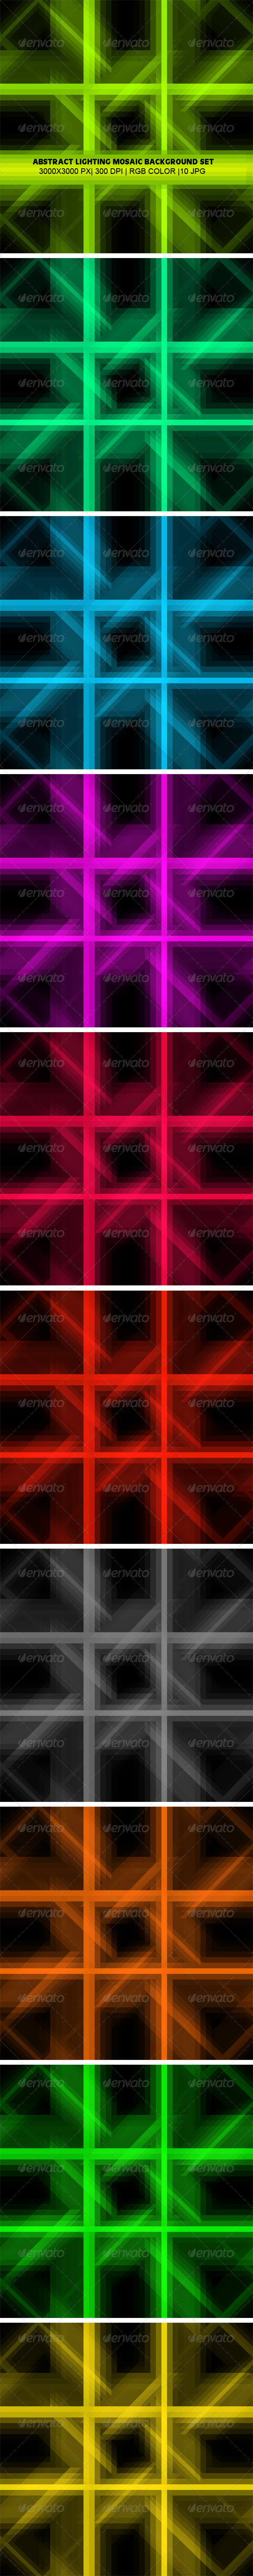 Lighting Mosaic Background Set - Backgrounds Graphics